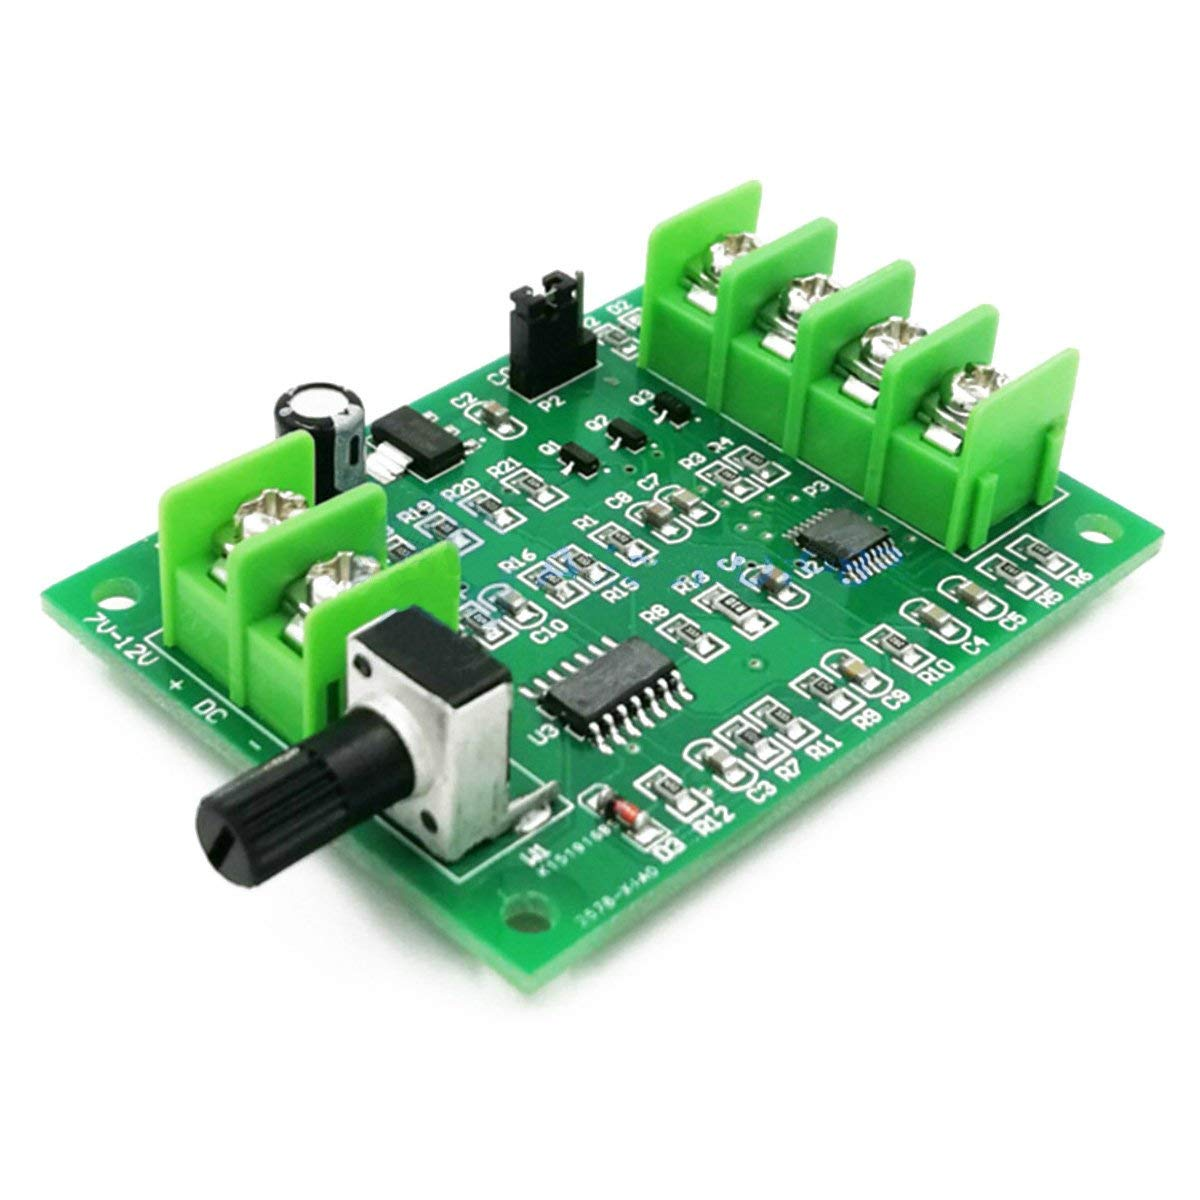 Cheap Brushless Dc Motor Driver Find Wiring Circuit Motorcontrol Controlcircuit Get Quotations Sodial 5v 12v Board Controller For Hard Drive 3 4